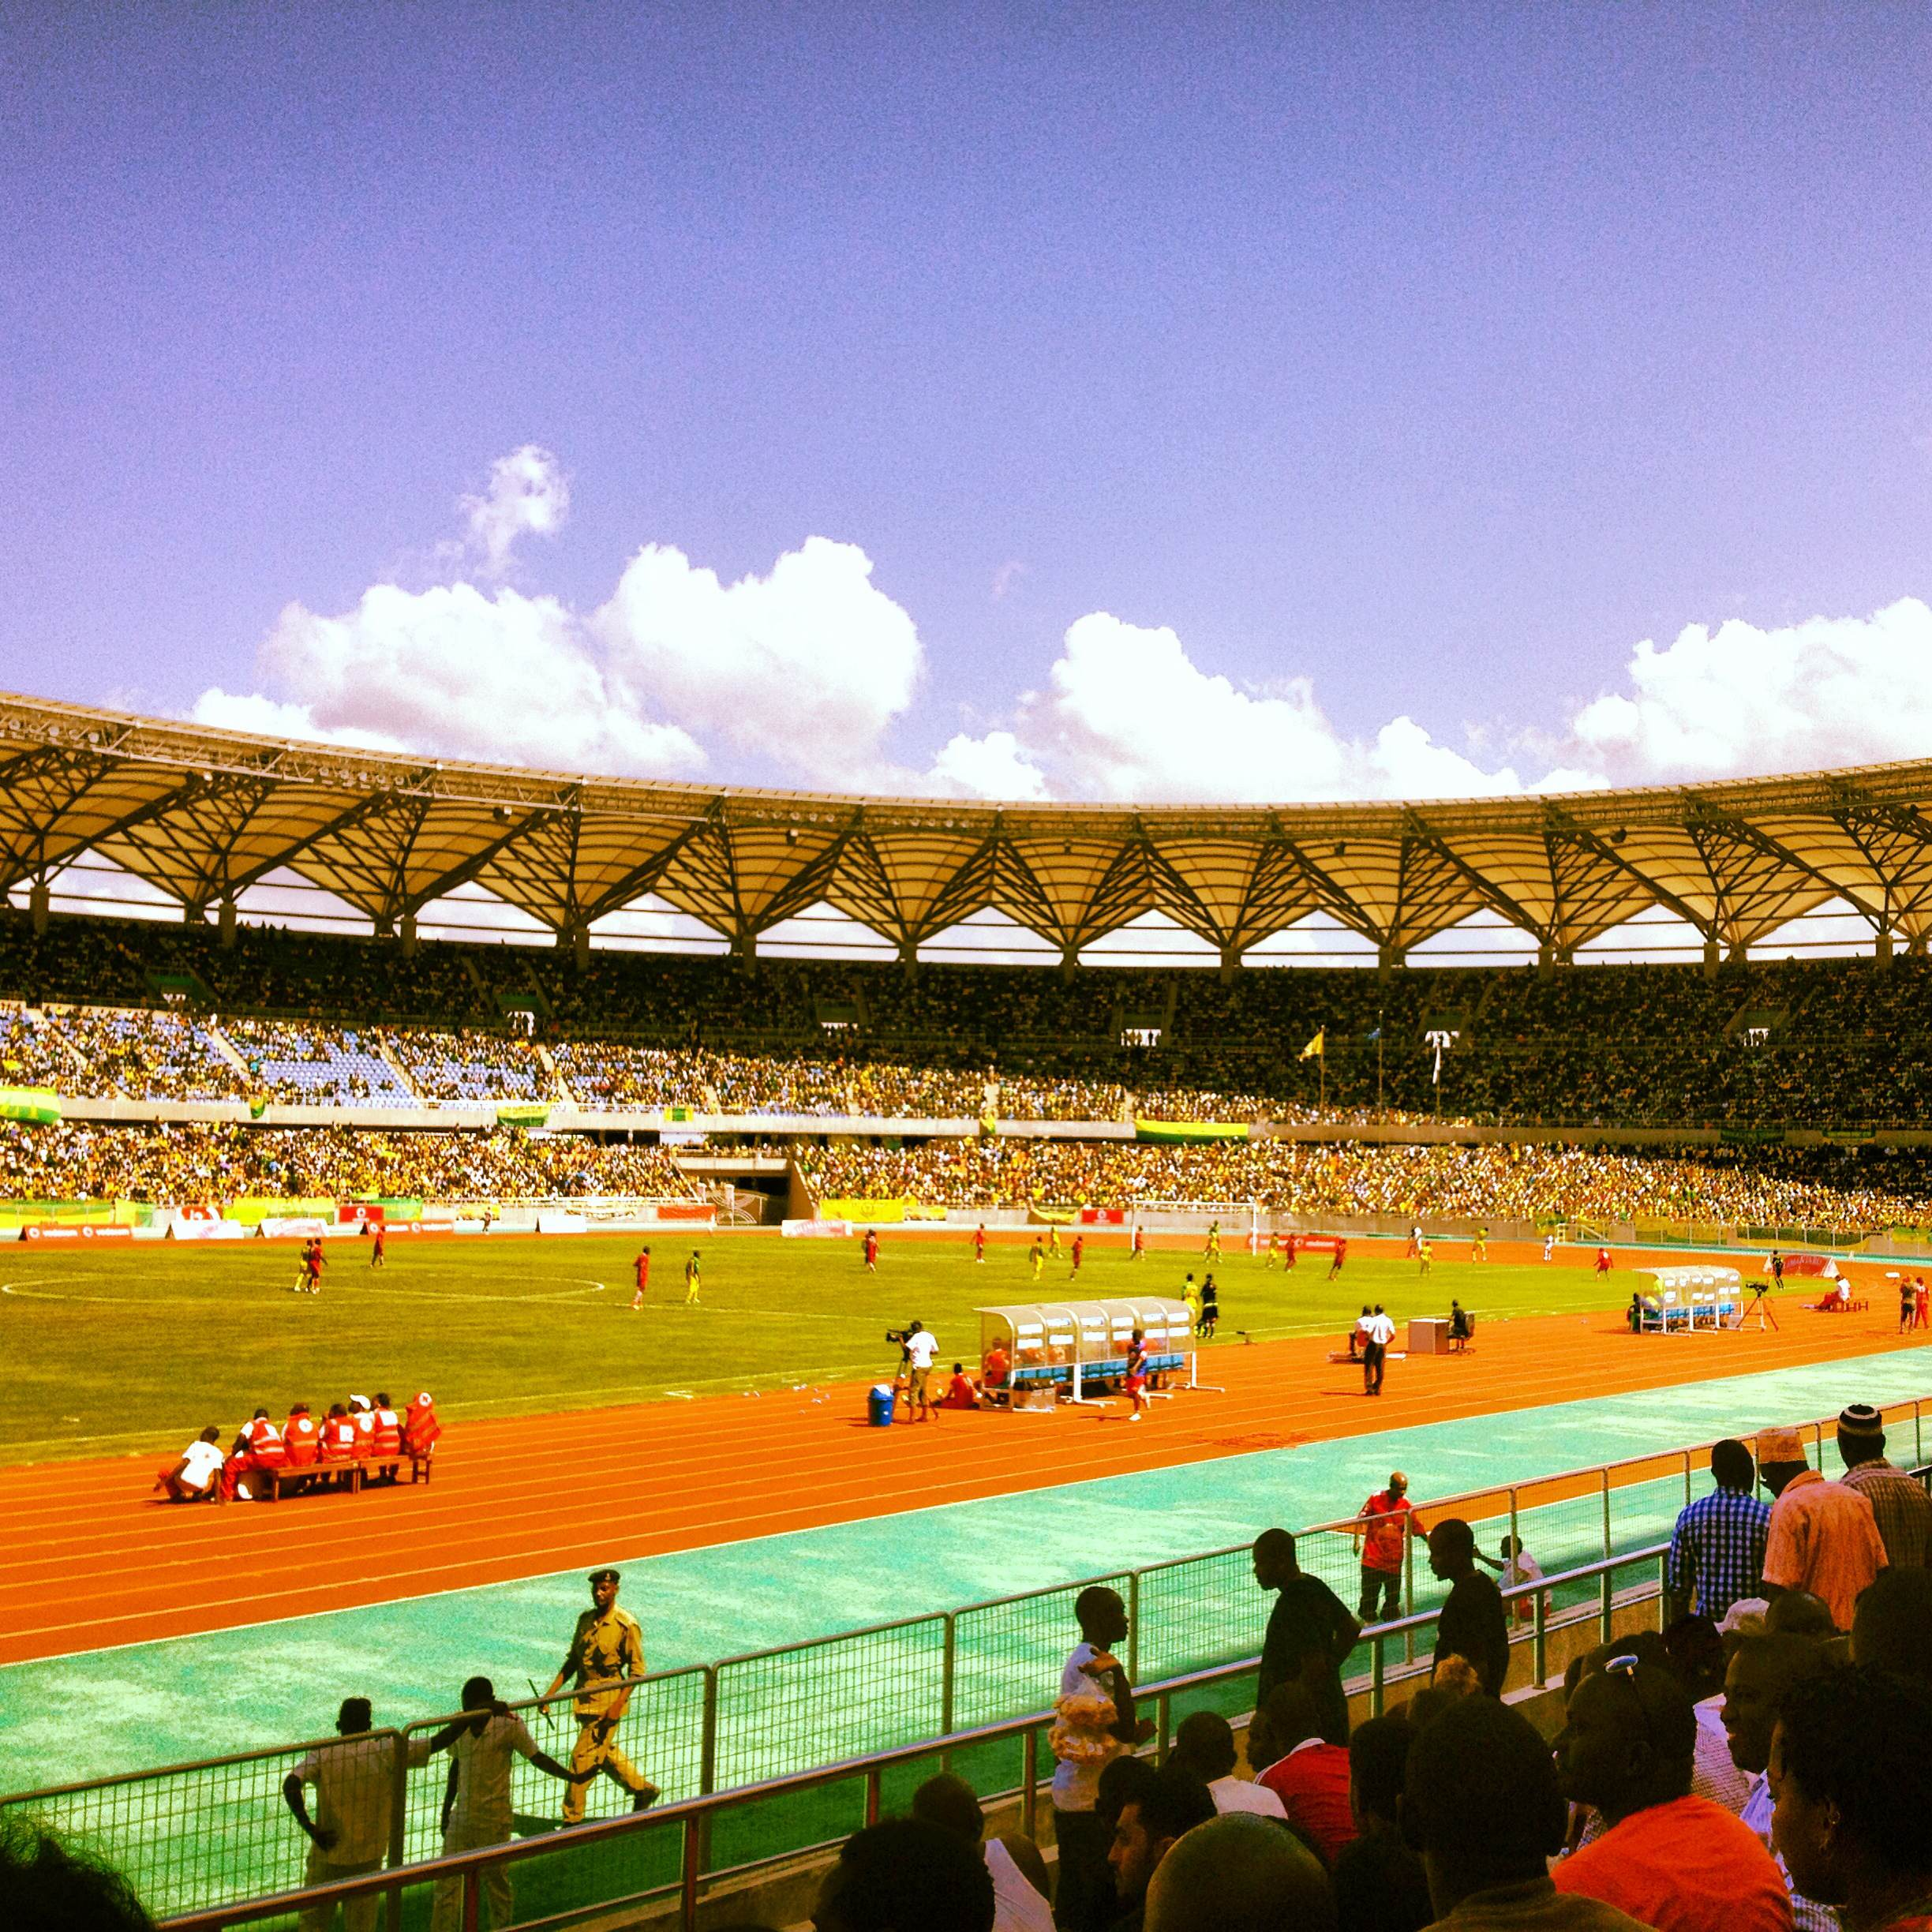 The Benjamin Mkapa National Stadium in Dar es Salaam, Tanzania. Photo by Omar Mohammed